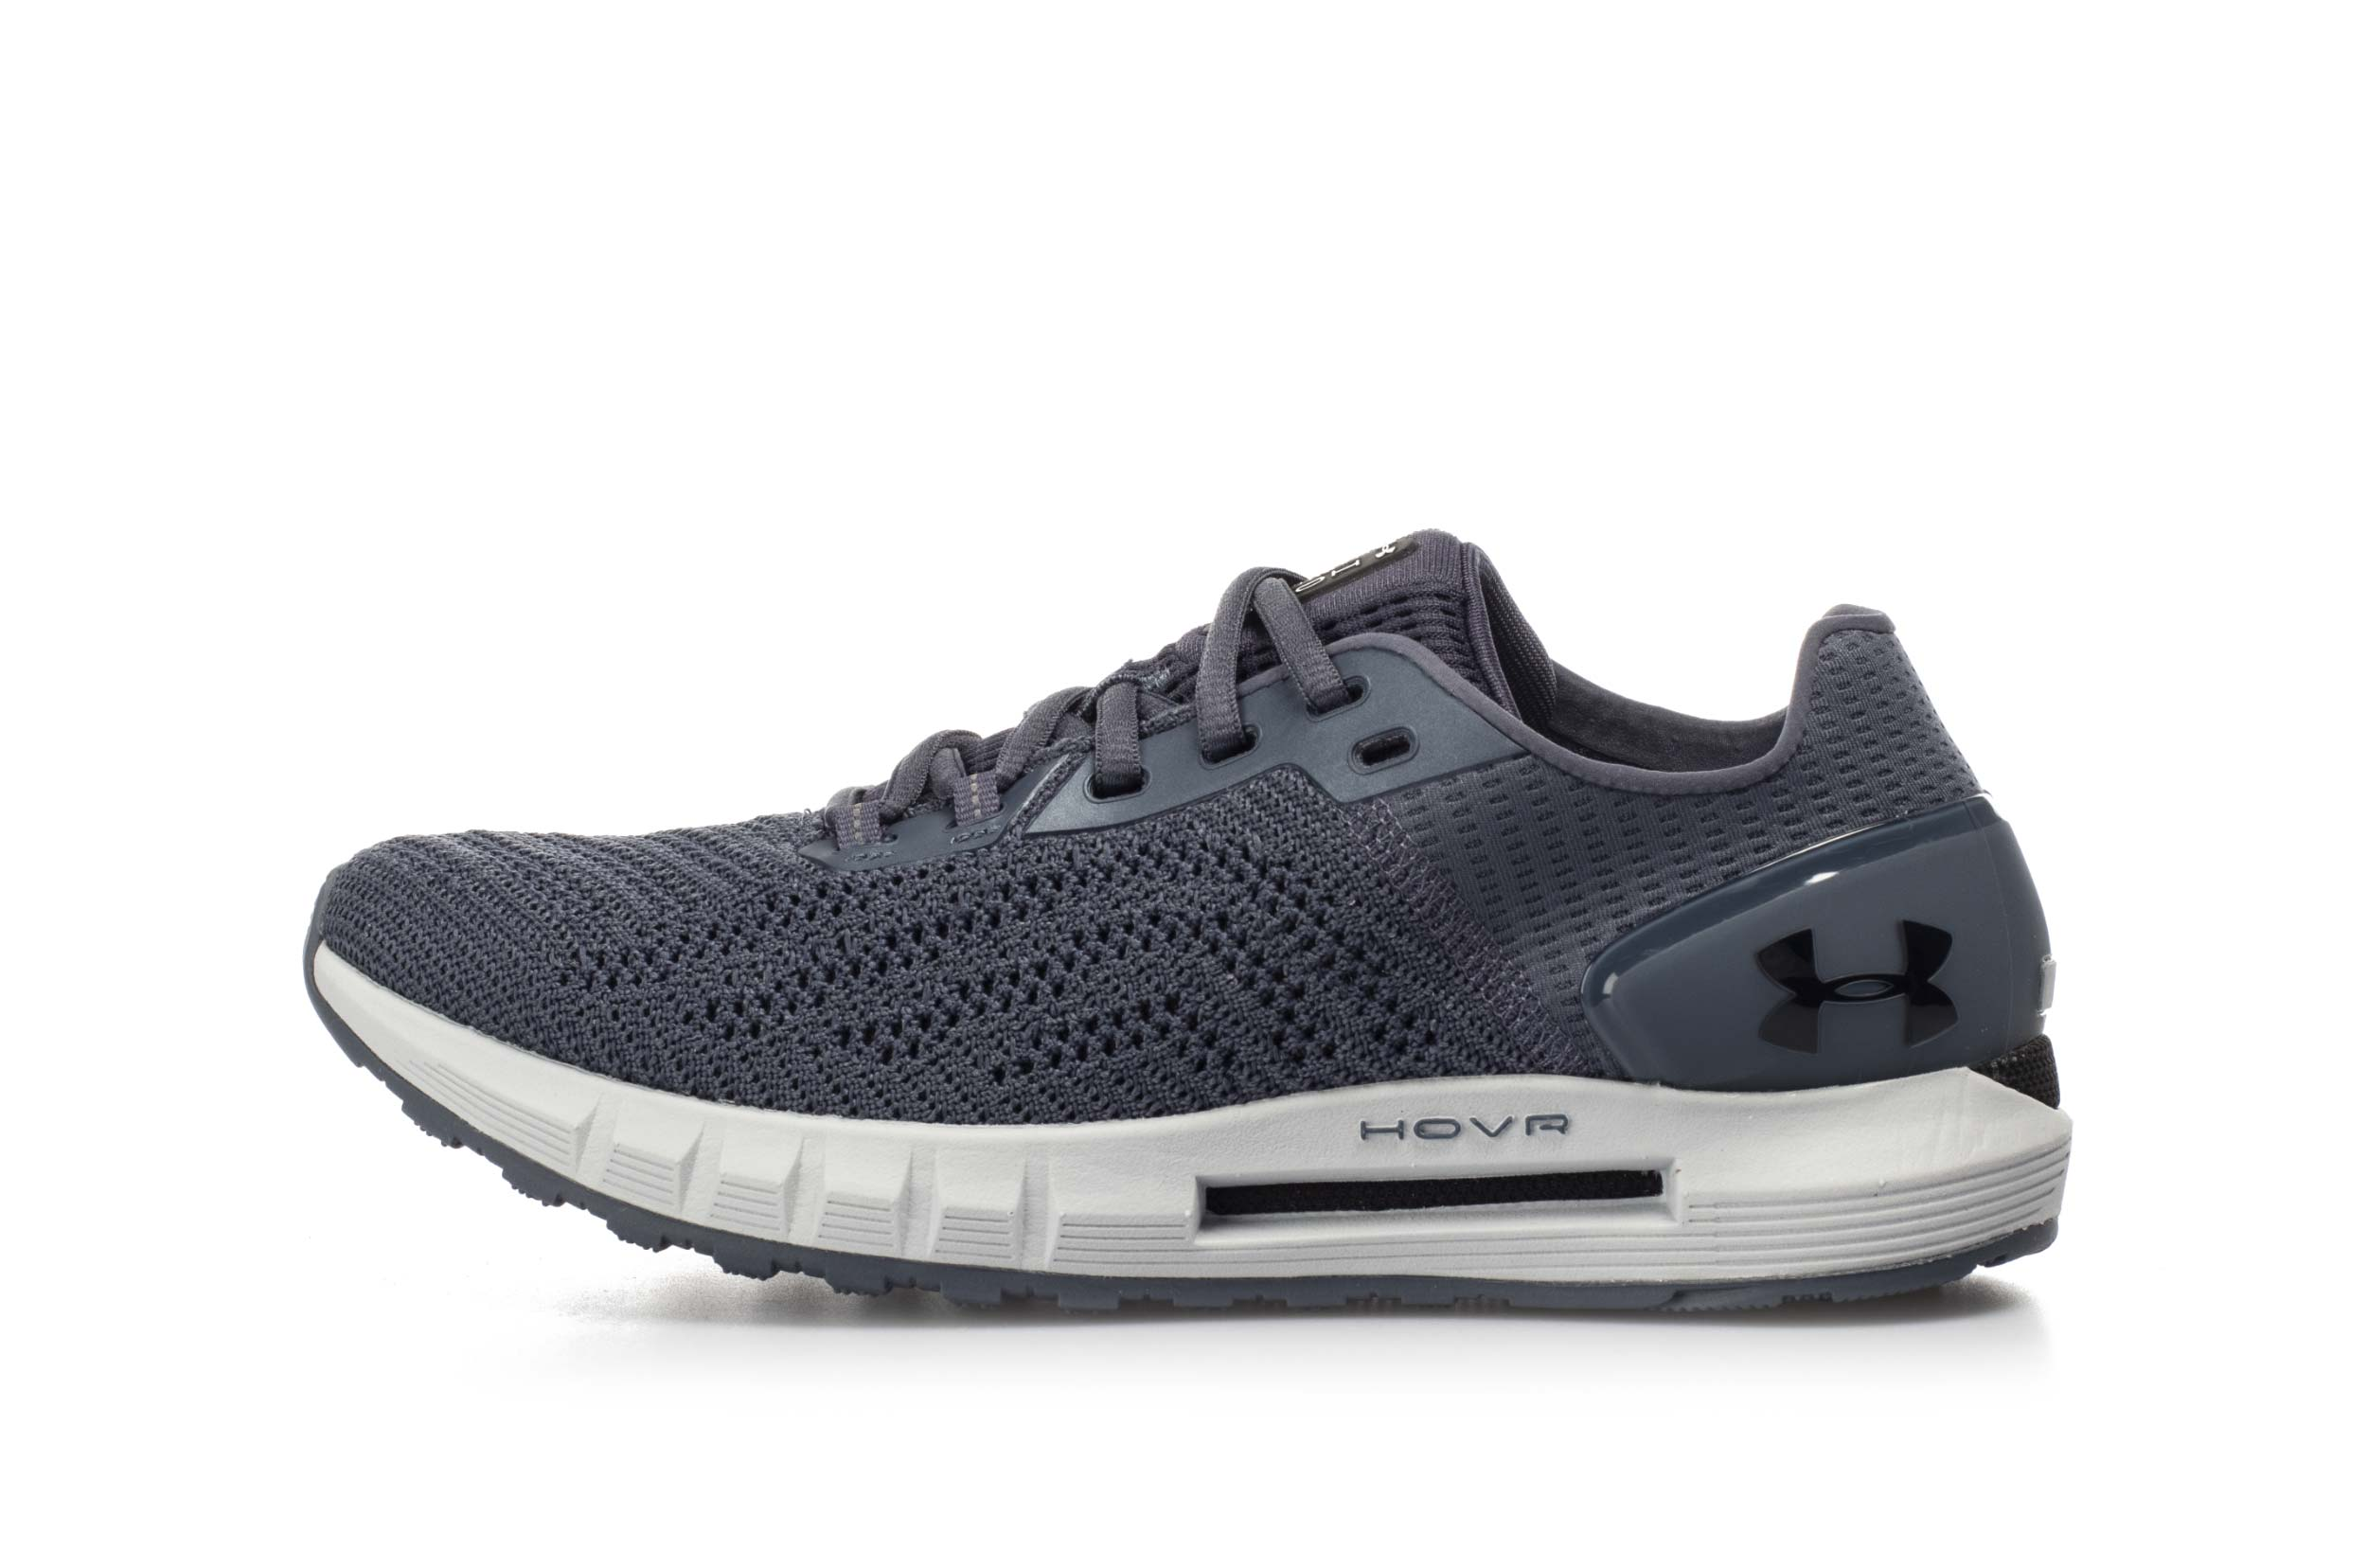 UNDER ARMOUR HOVR SONIC 3021588-400 Μωβ